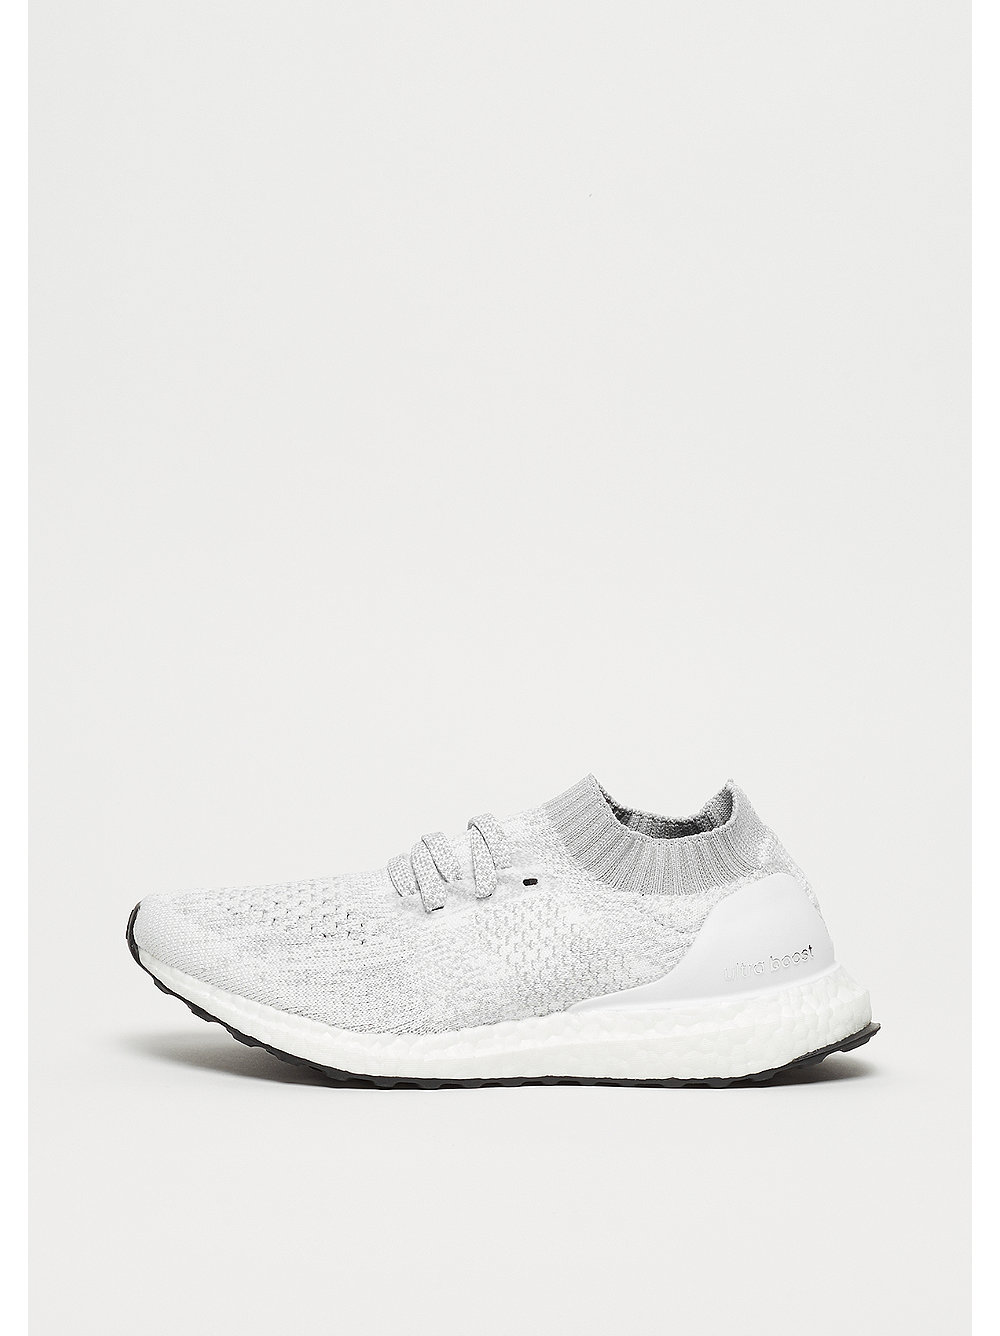 UltraBOOST Uncaged ftwr white/white tint/grey two